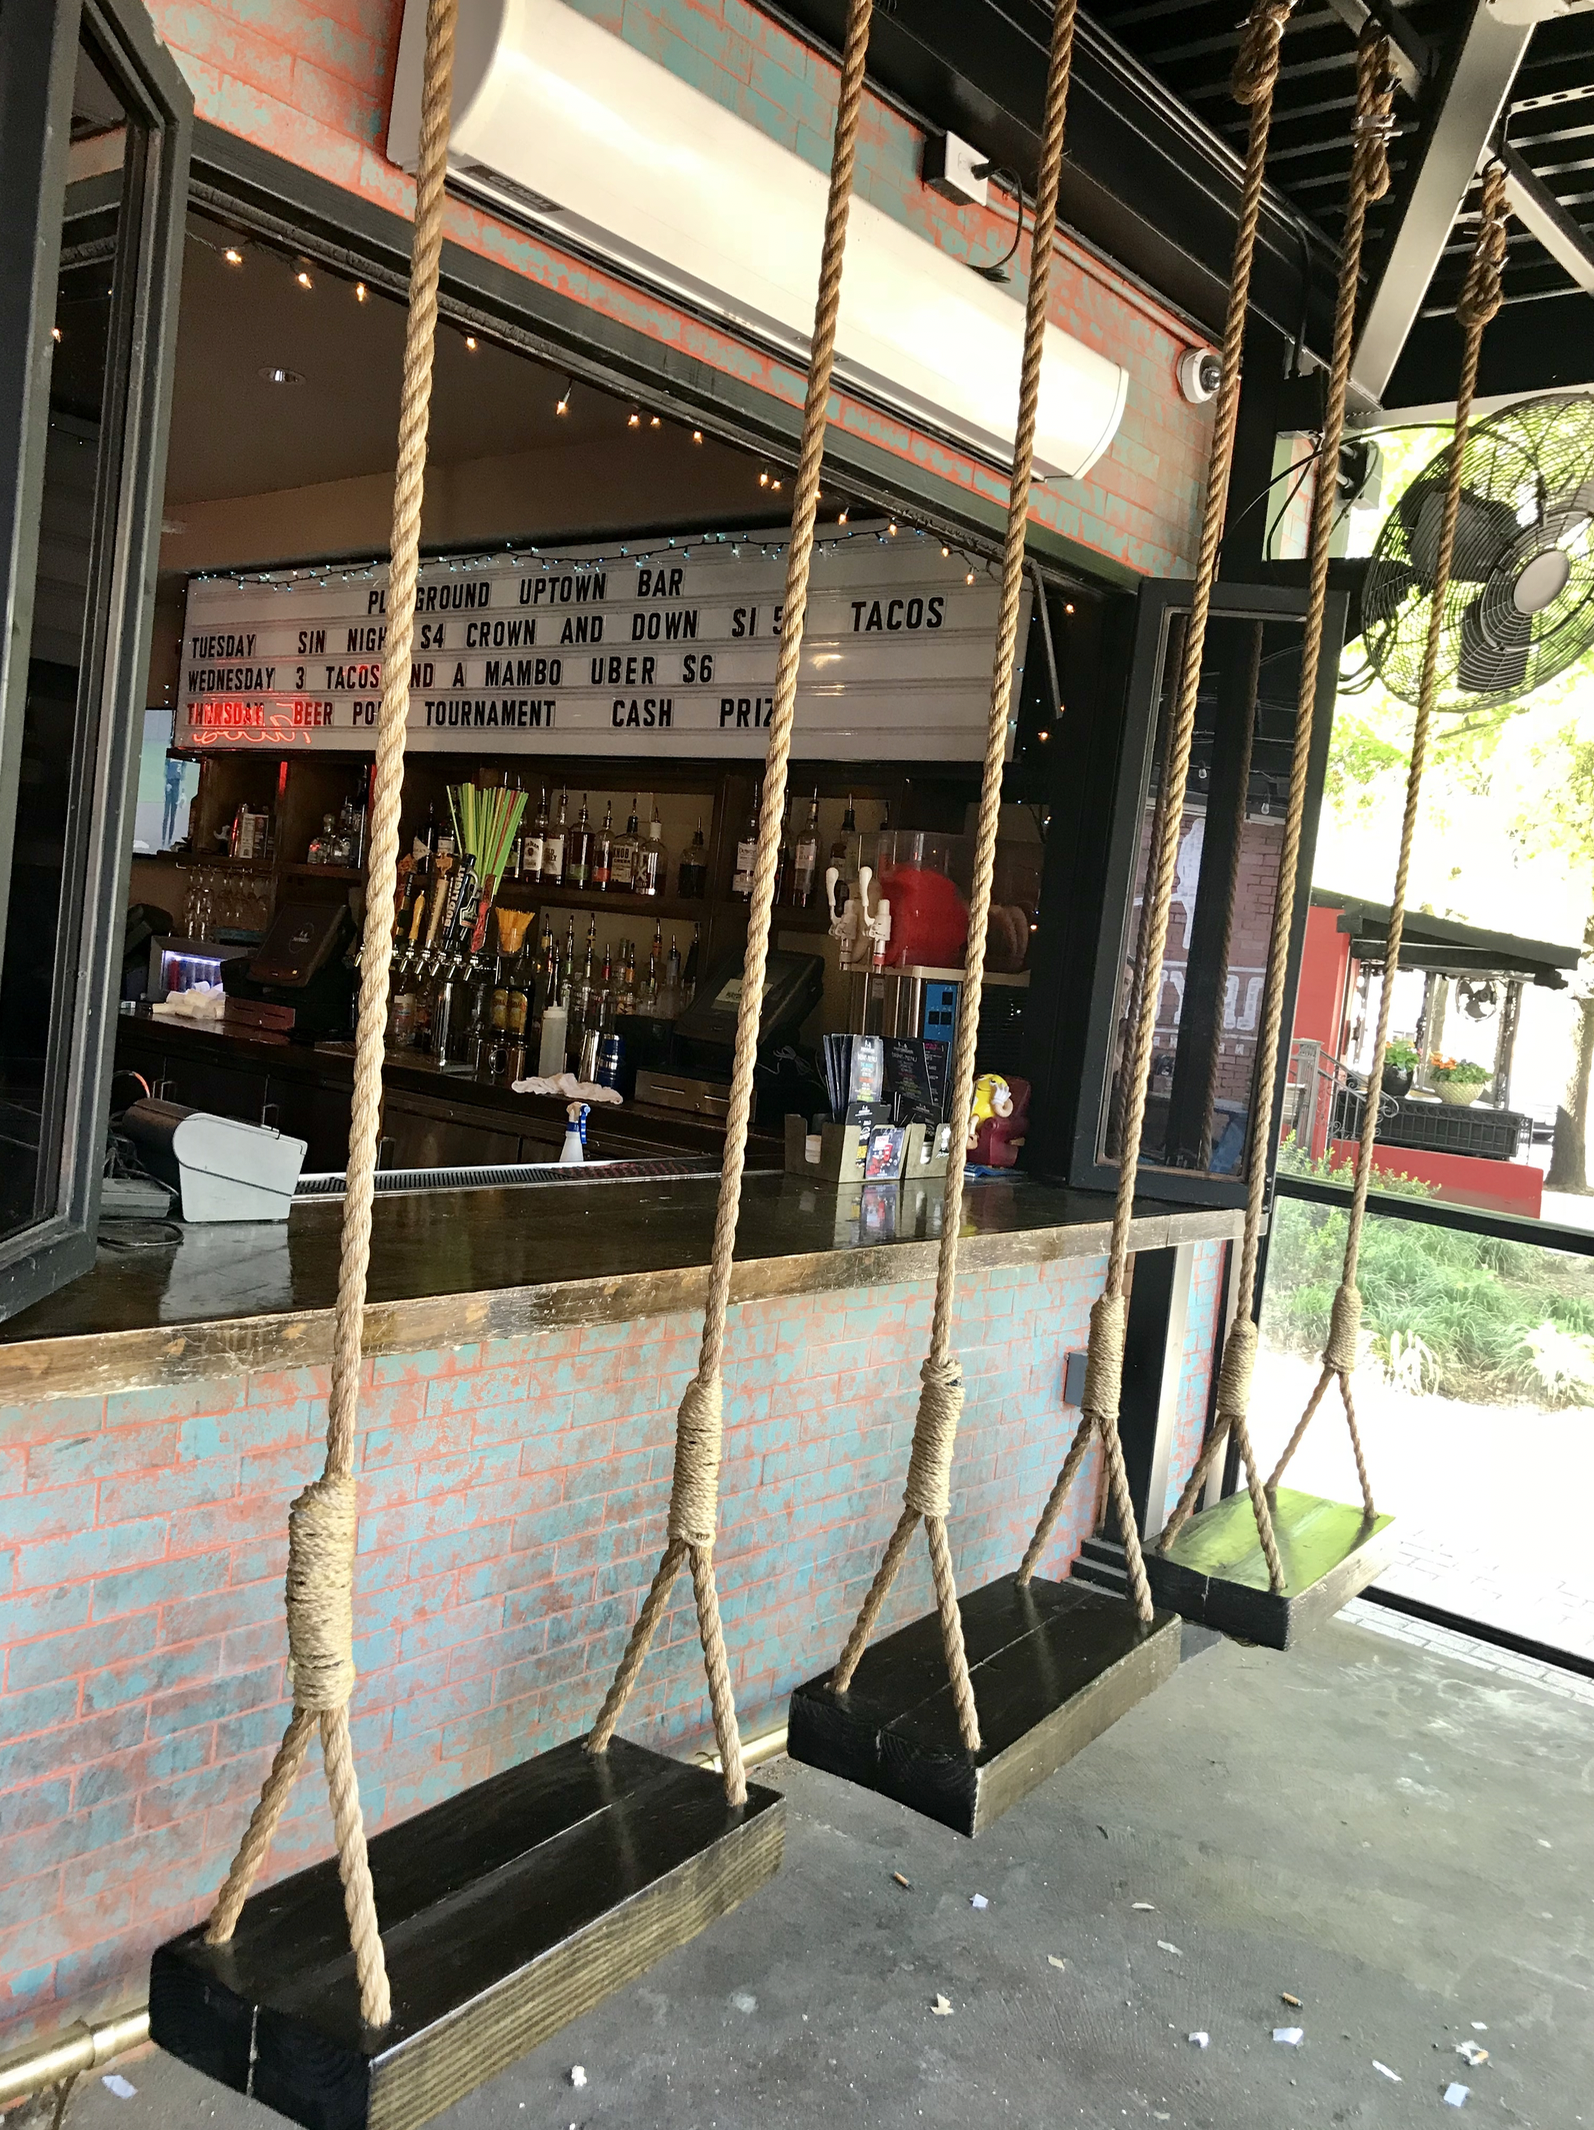 pretty cool way to 'hang' out at the bar